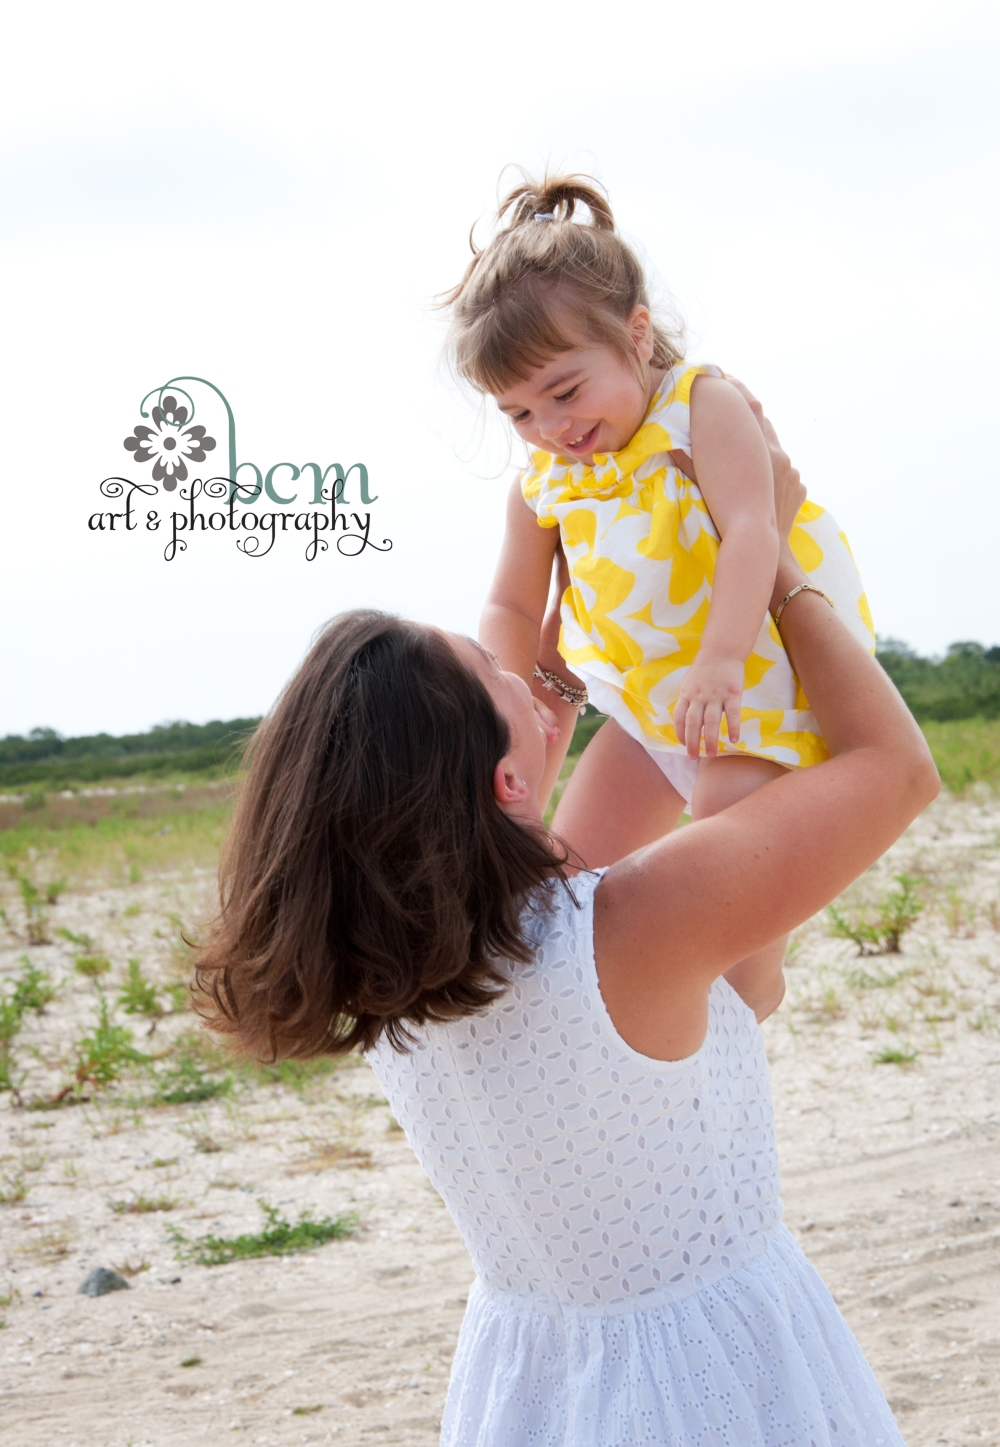 Family Portraits ~ bcm art & photography 2013